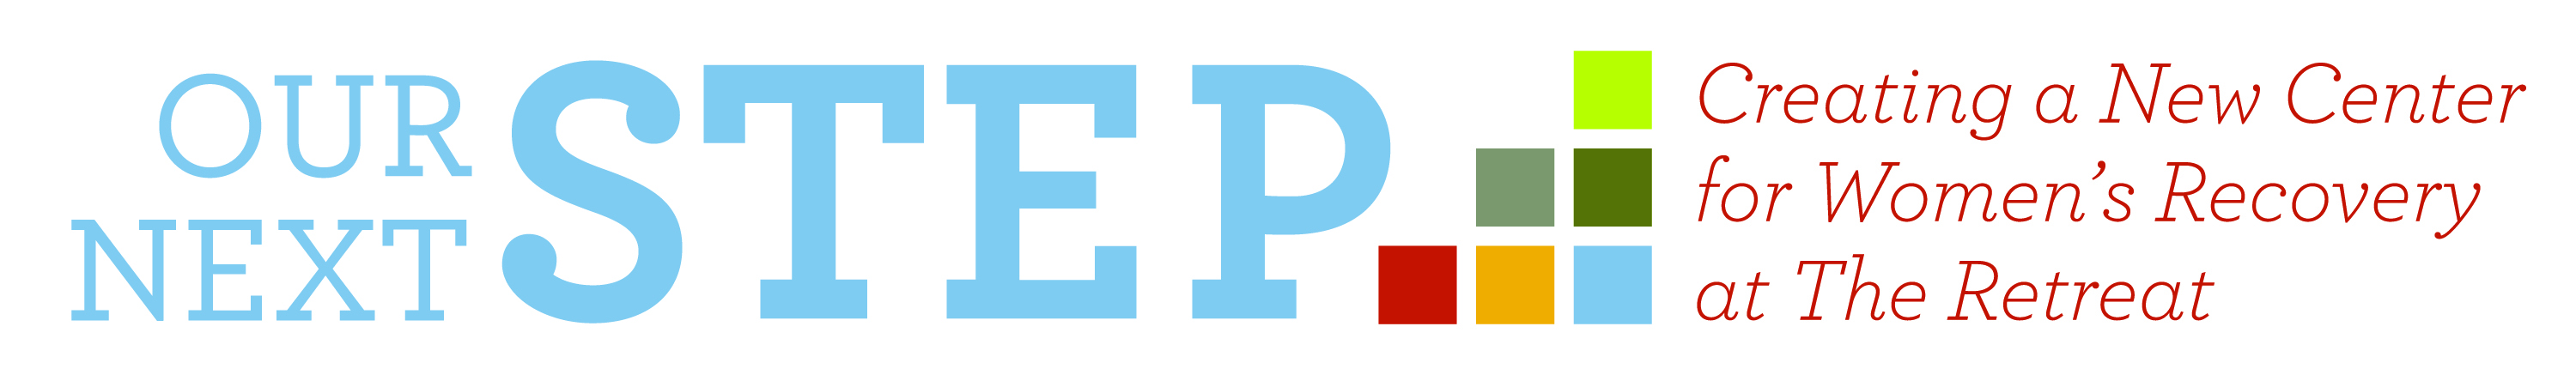 Next Step Logo Horizontal_CMYK.jpg